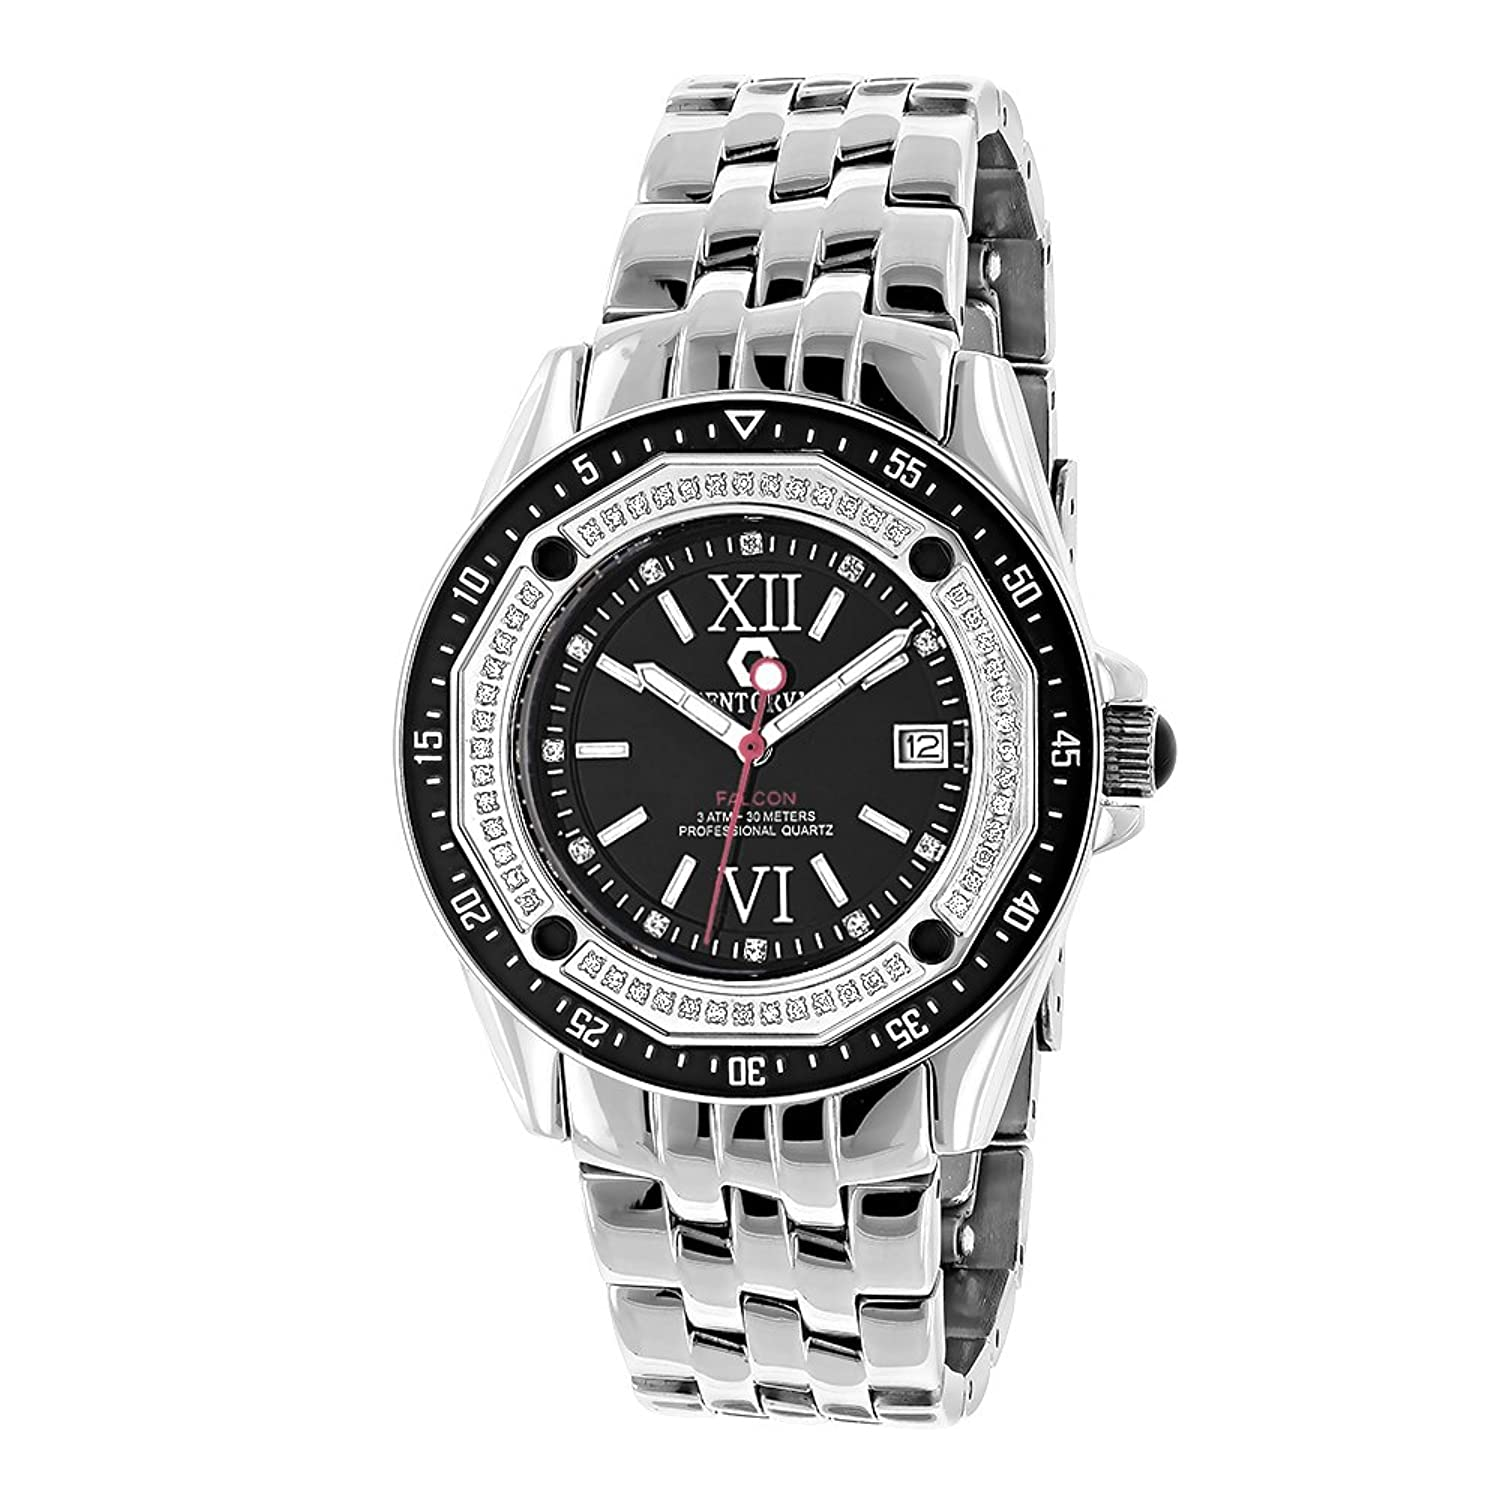 Centorum Diamond Watch 0.5ct Midsize Falcon